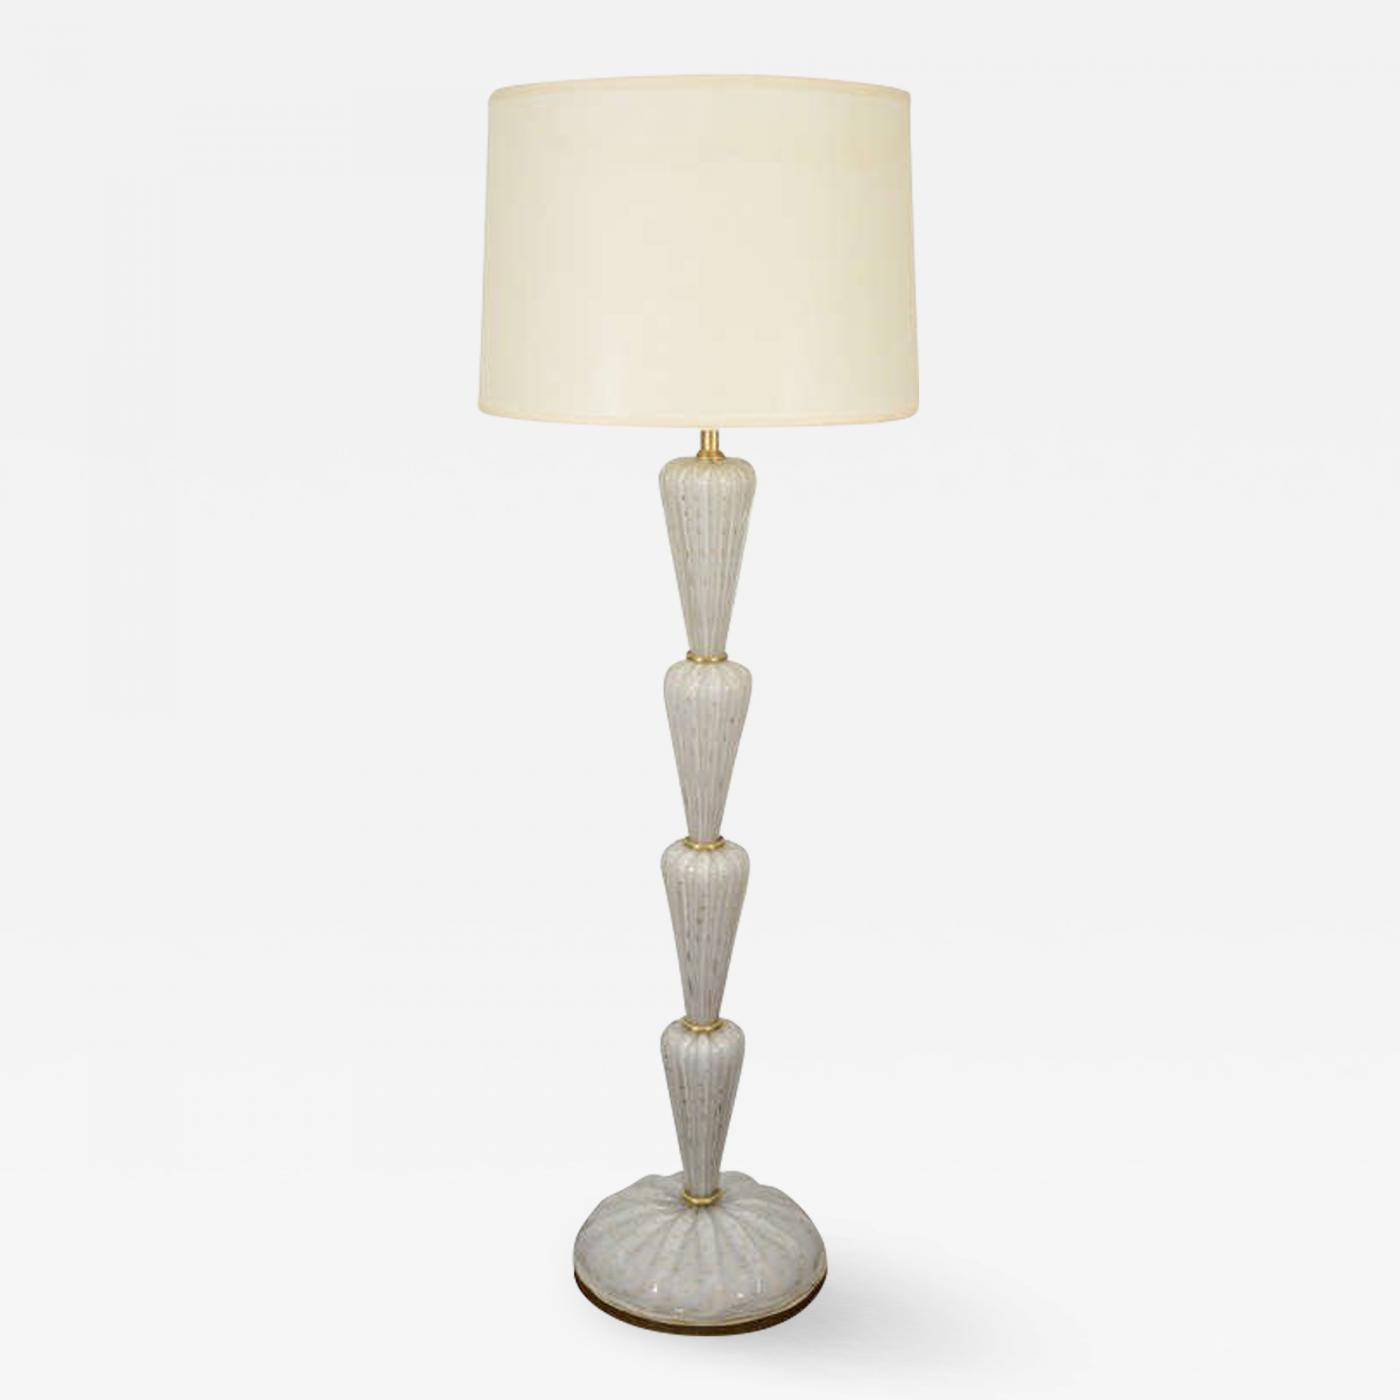 Seguso - Seguso Murano Glass Floor Lamp in White with Gold Dots